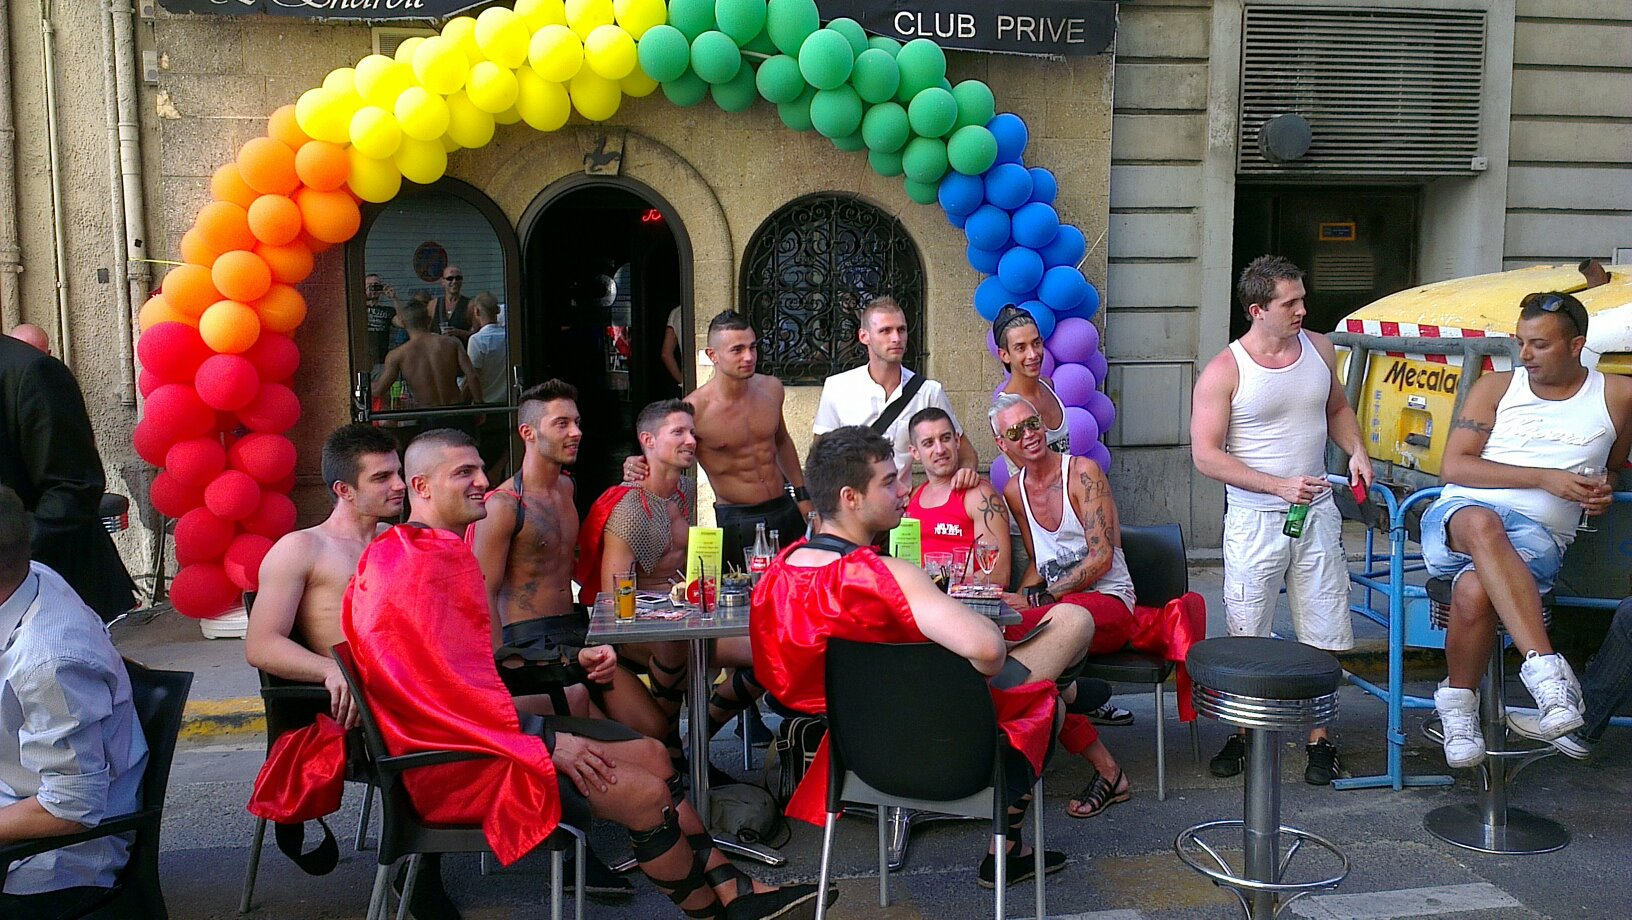 rencontre marseille gay clubs à Aubervilliers